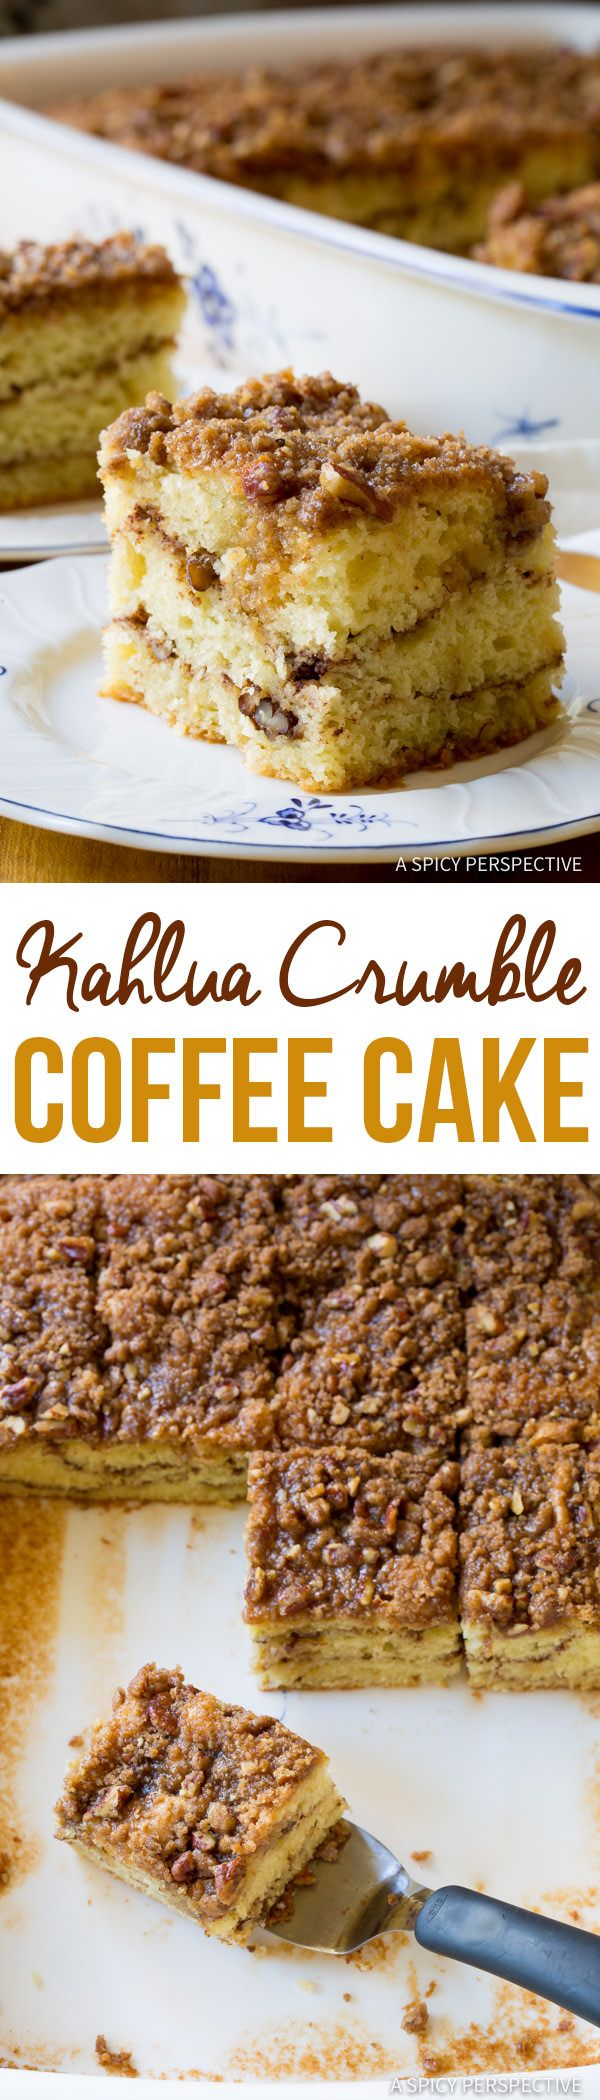 Tender Boozy Kahlua Coffee Cake Recipe | ASpicyPerspective.com